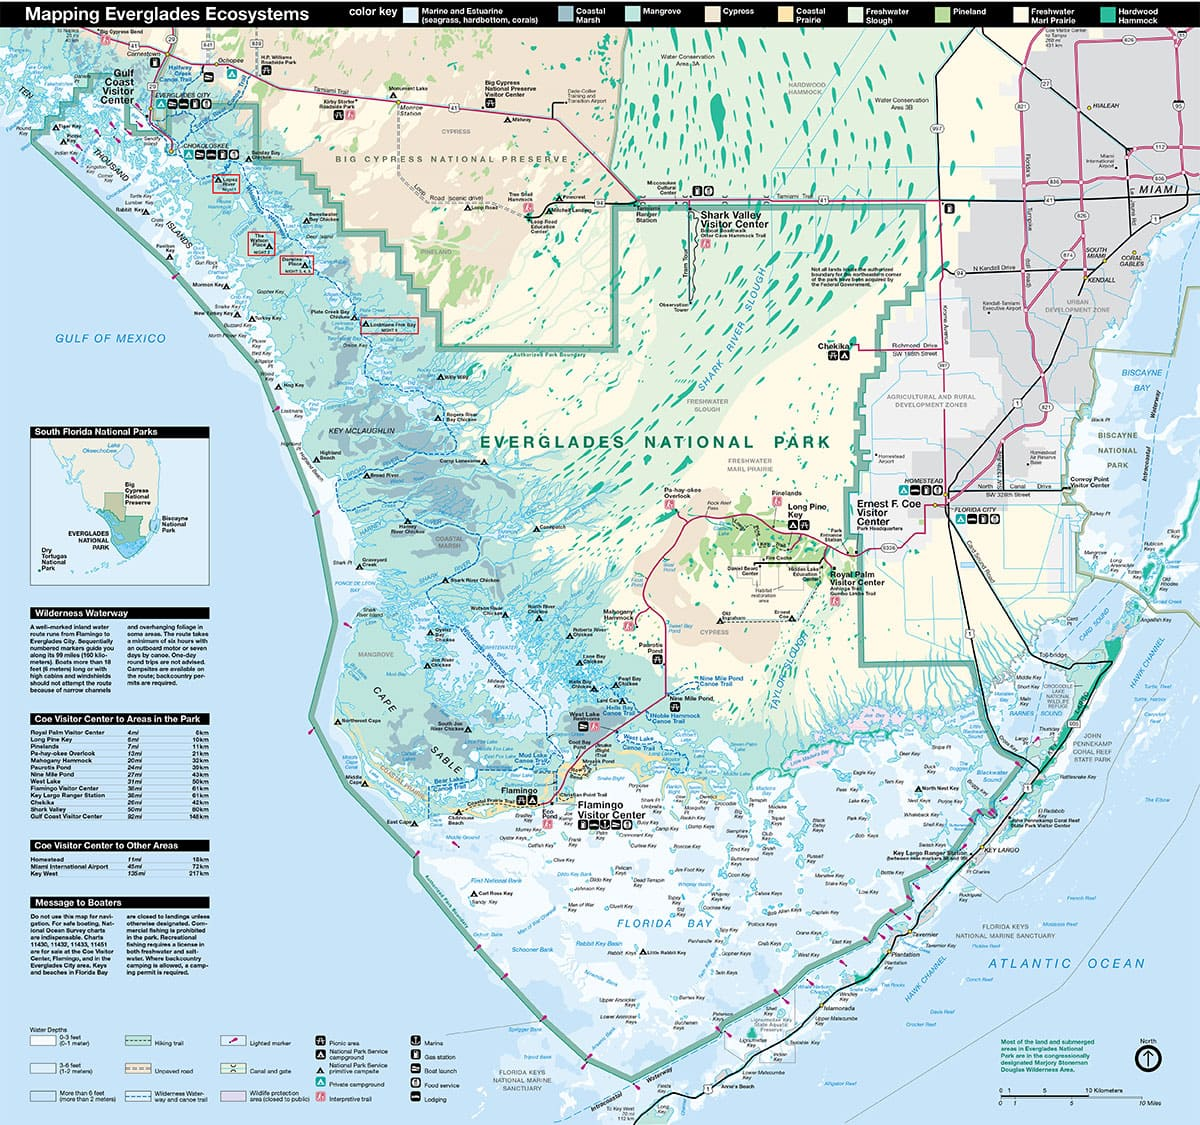 Karte, Everglades Nationalpark, Map, Florida, USA